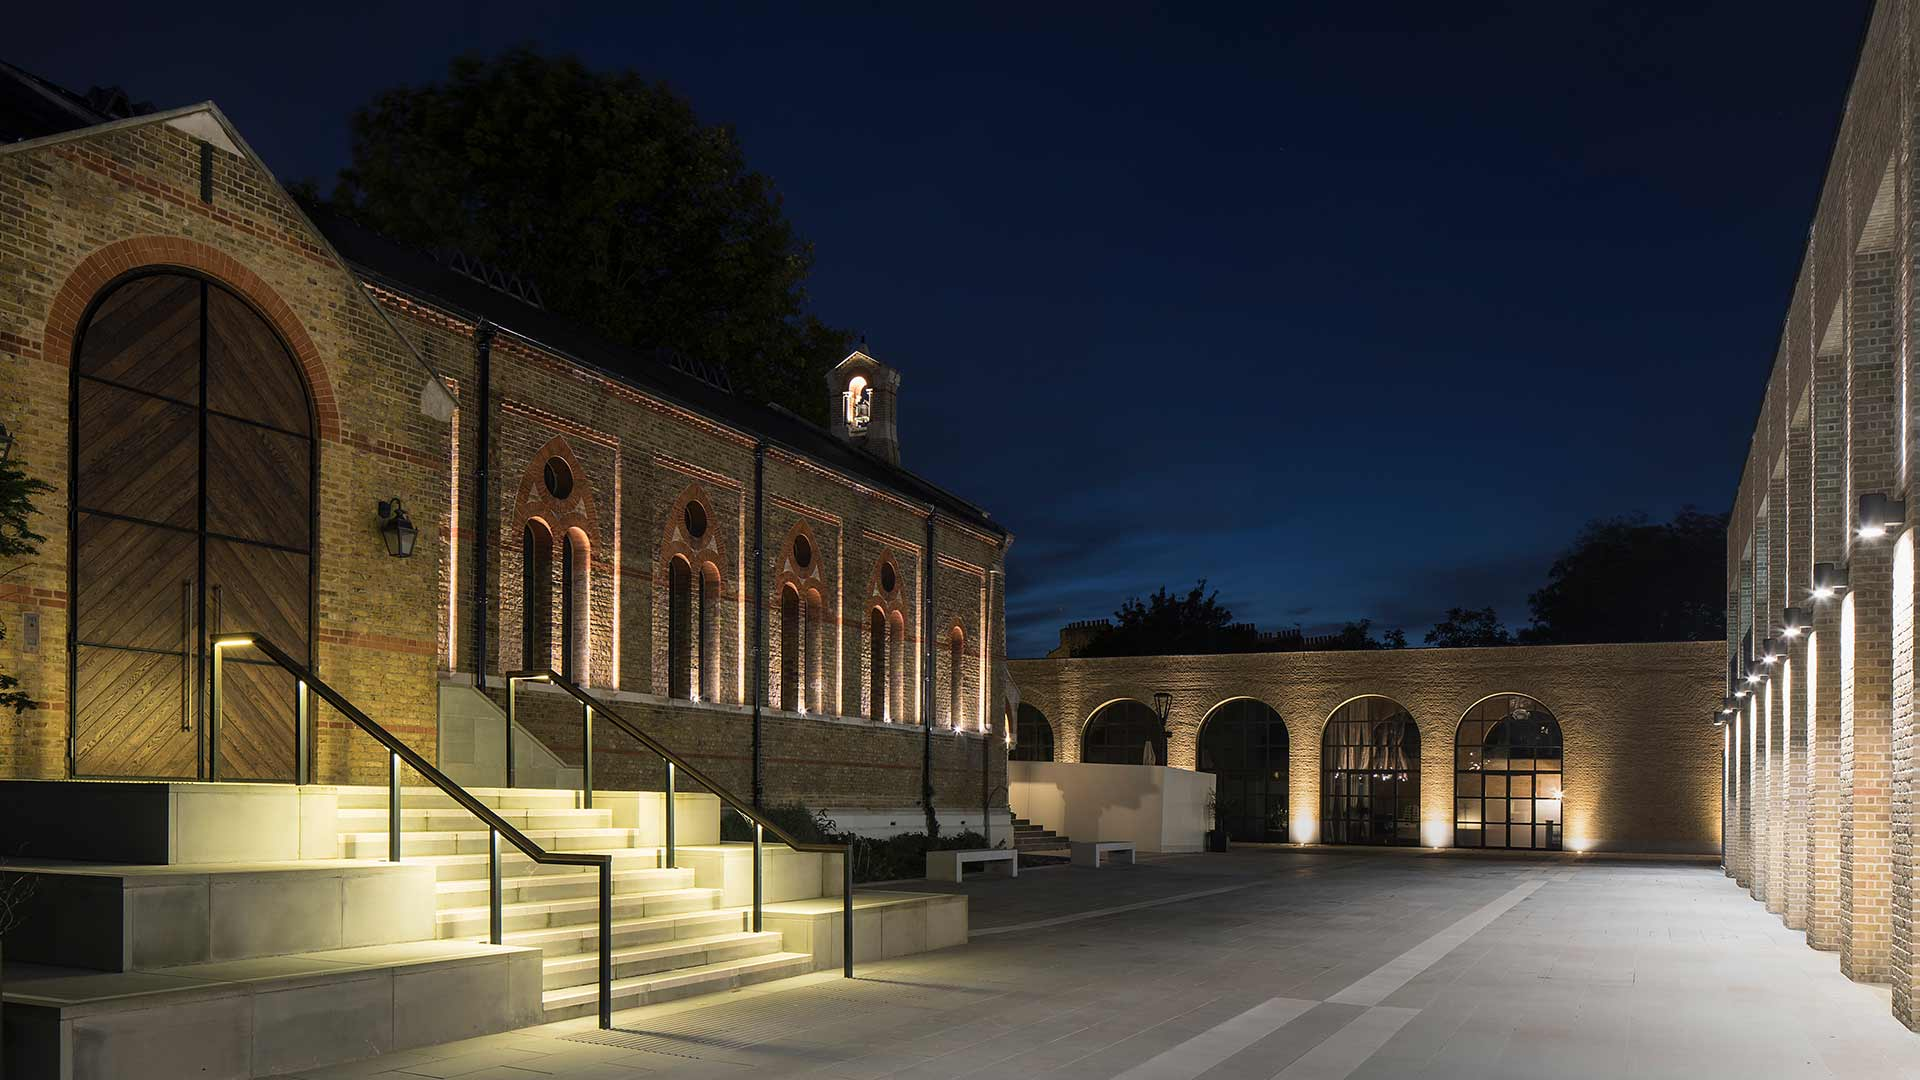 Nulty - Chelsea Barracks, London - Architectural Lighting Design Chapel Exterior Bell Tower Steps Handrails Facade Illumination